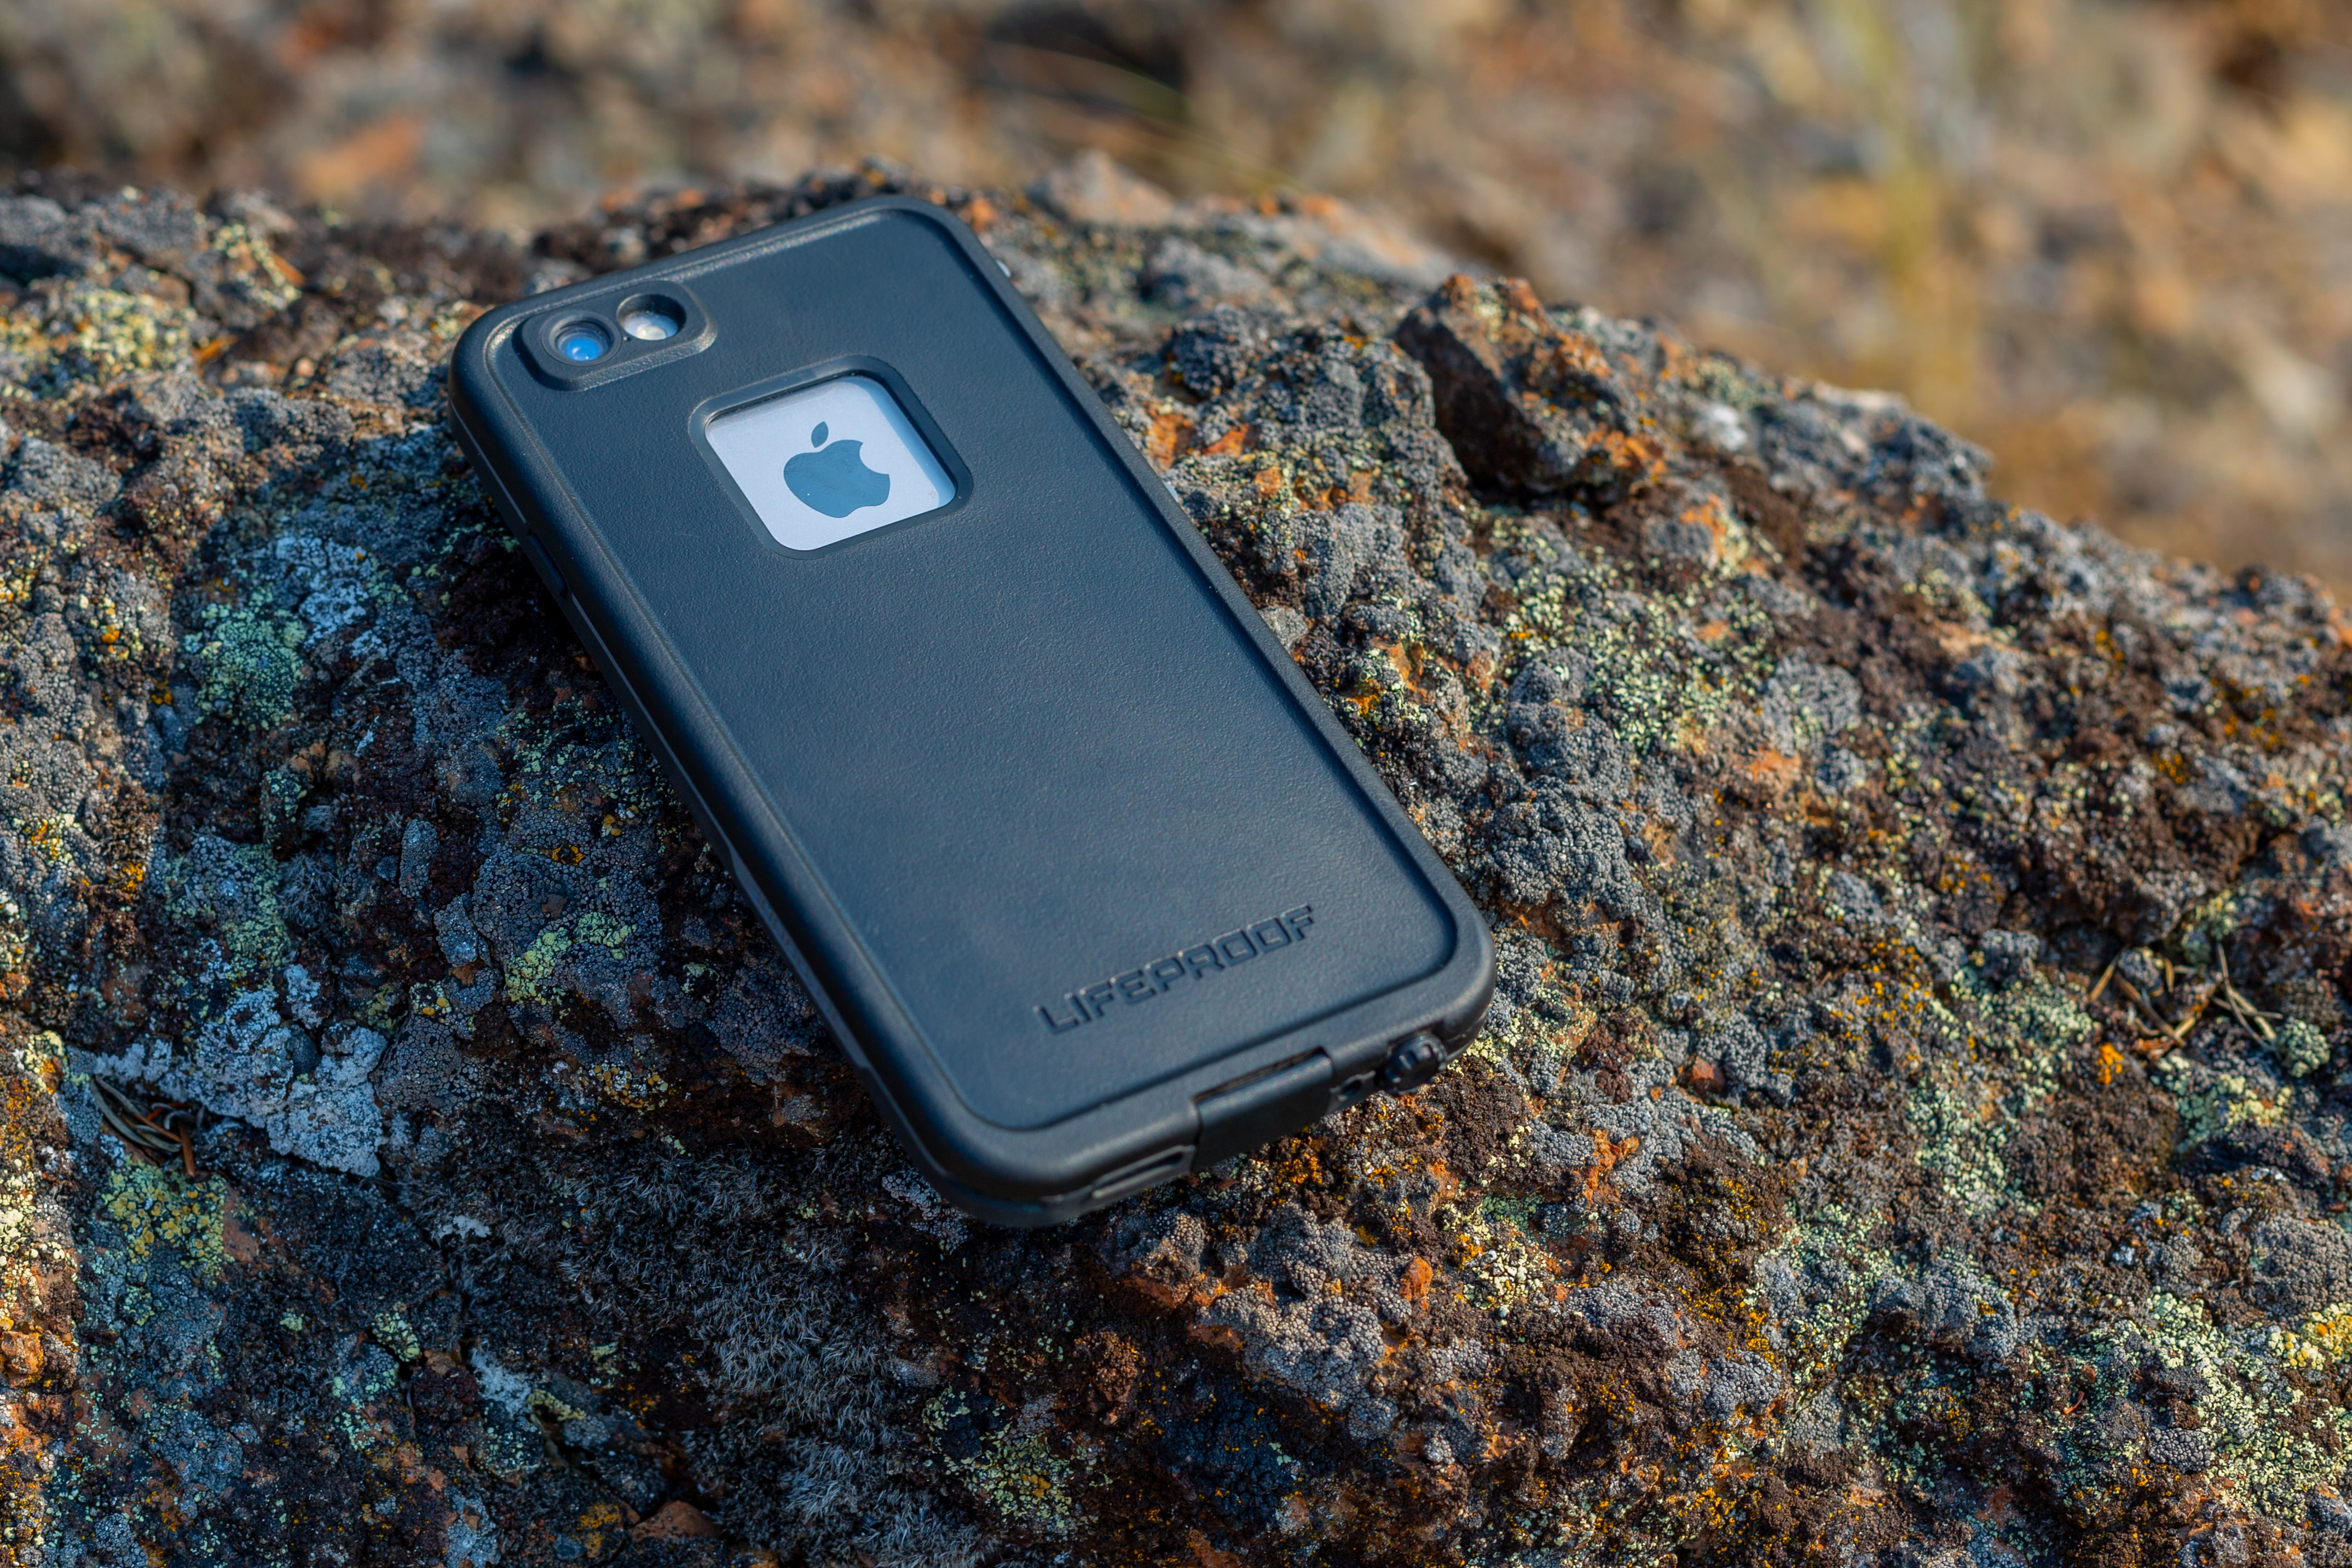 iPhone with black Lifeproof case on rock during daytime